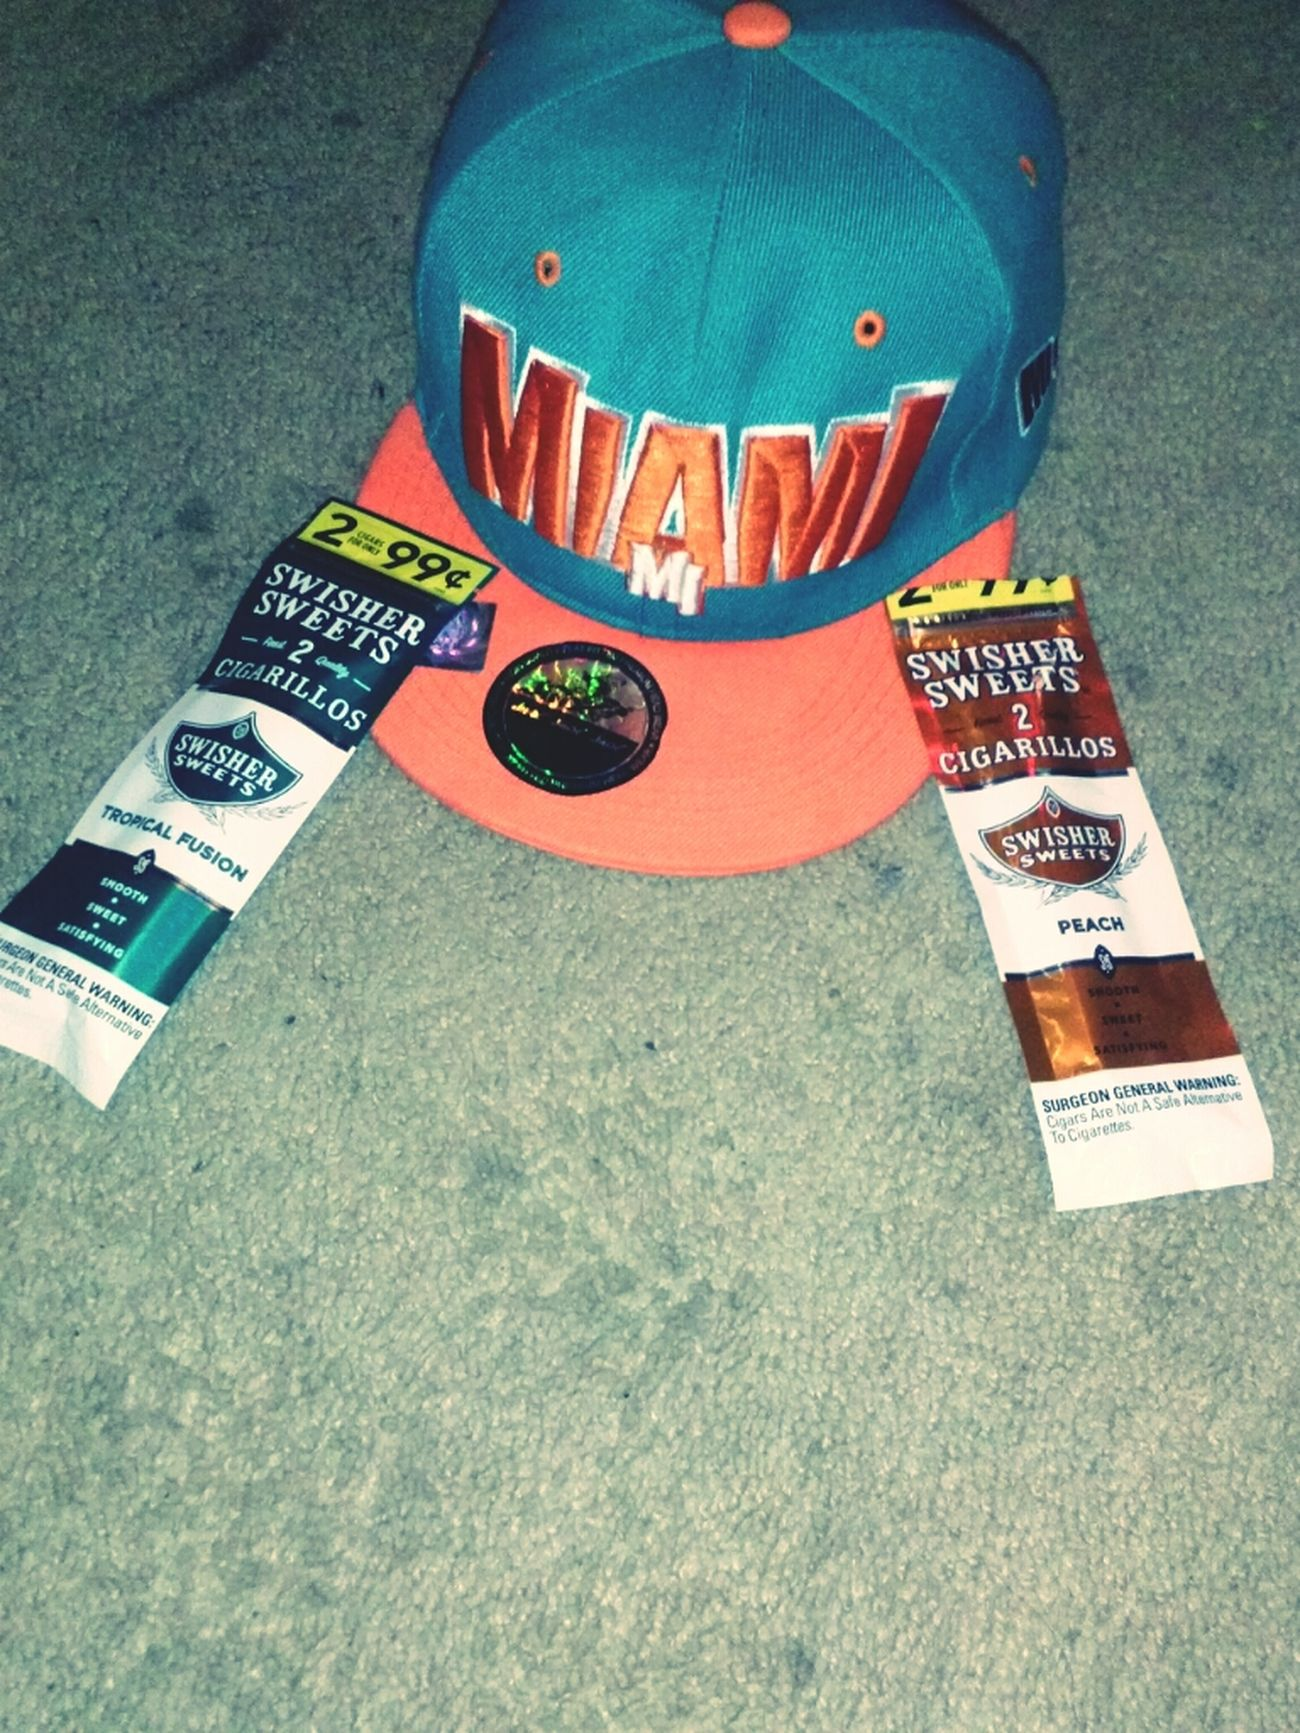 #doping #swag #miamheat